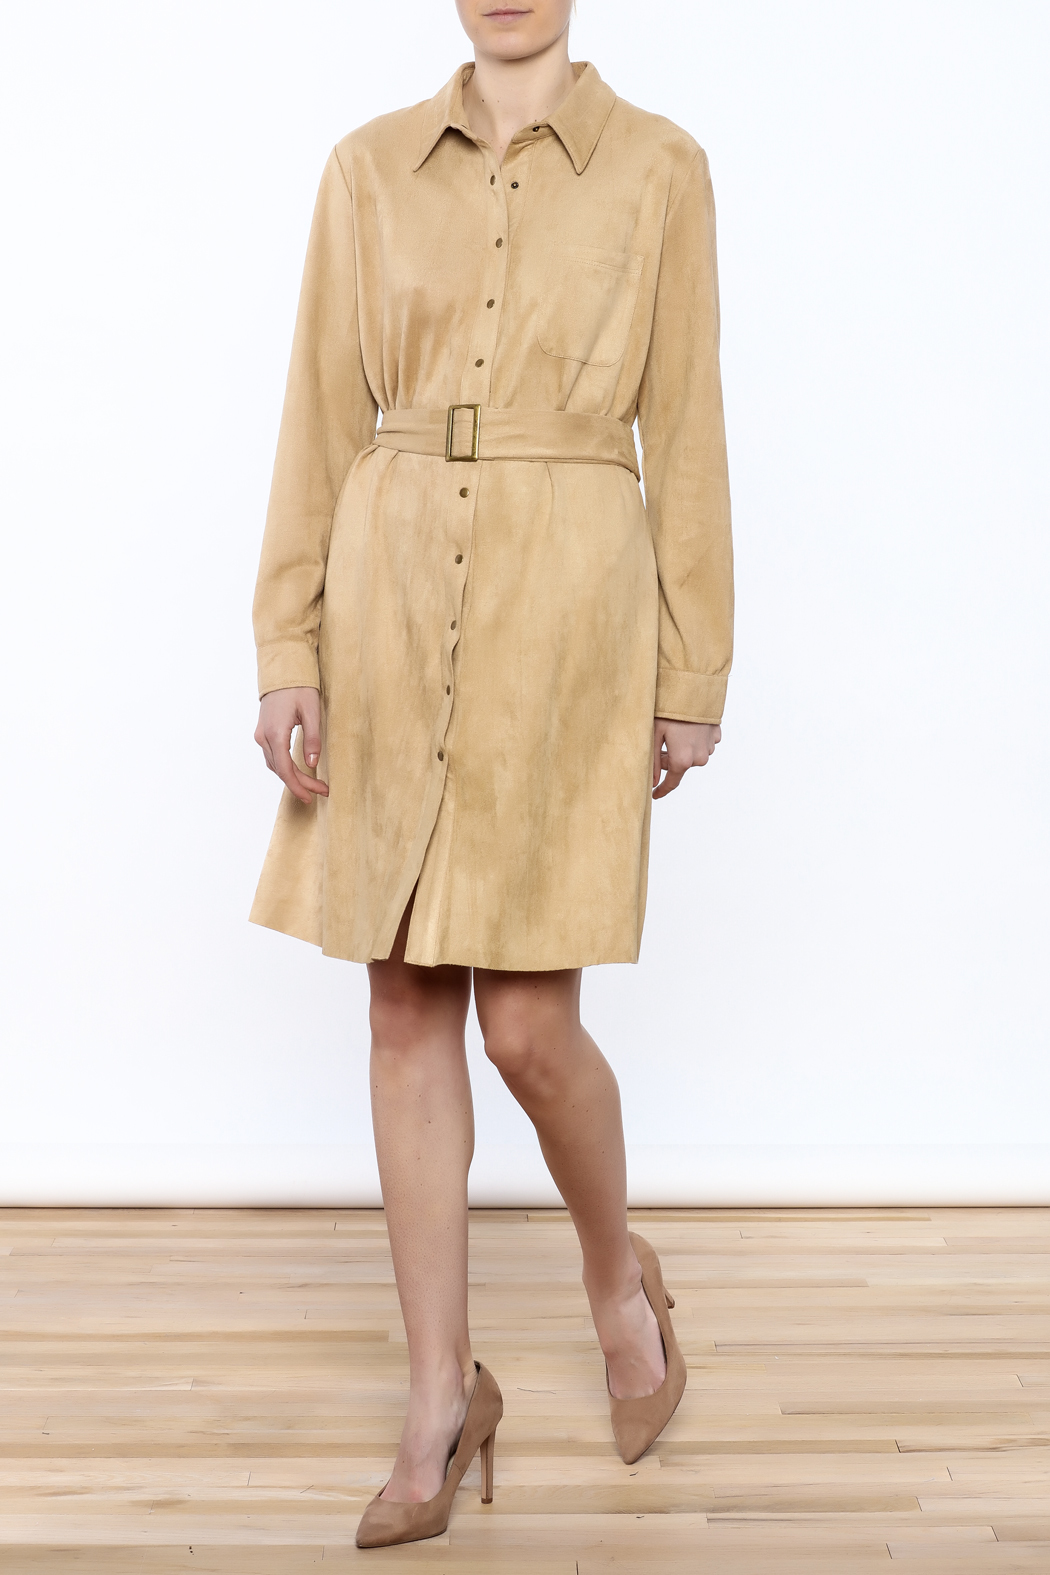 JOH Faux Suede Button-Down Dress - Front Full Image